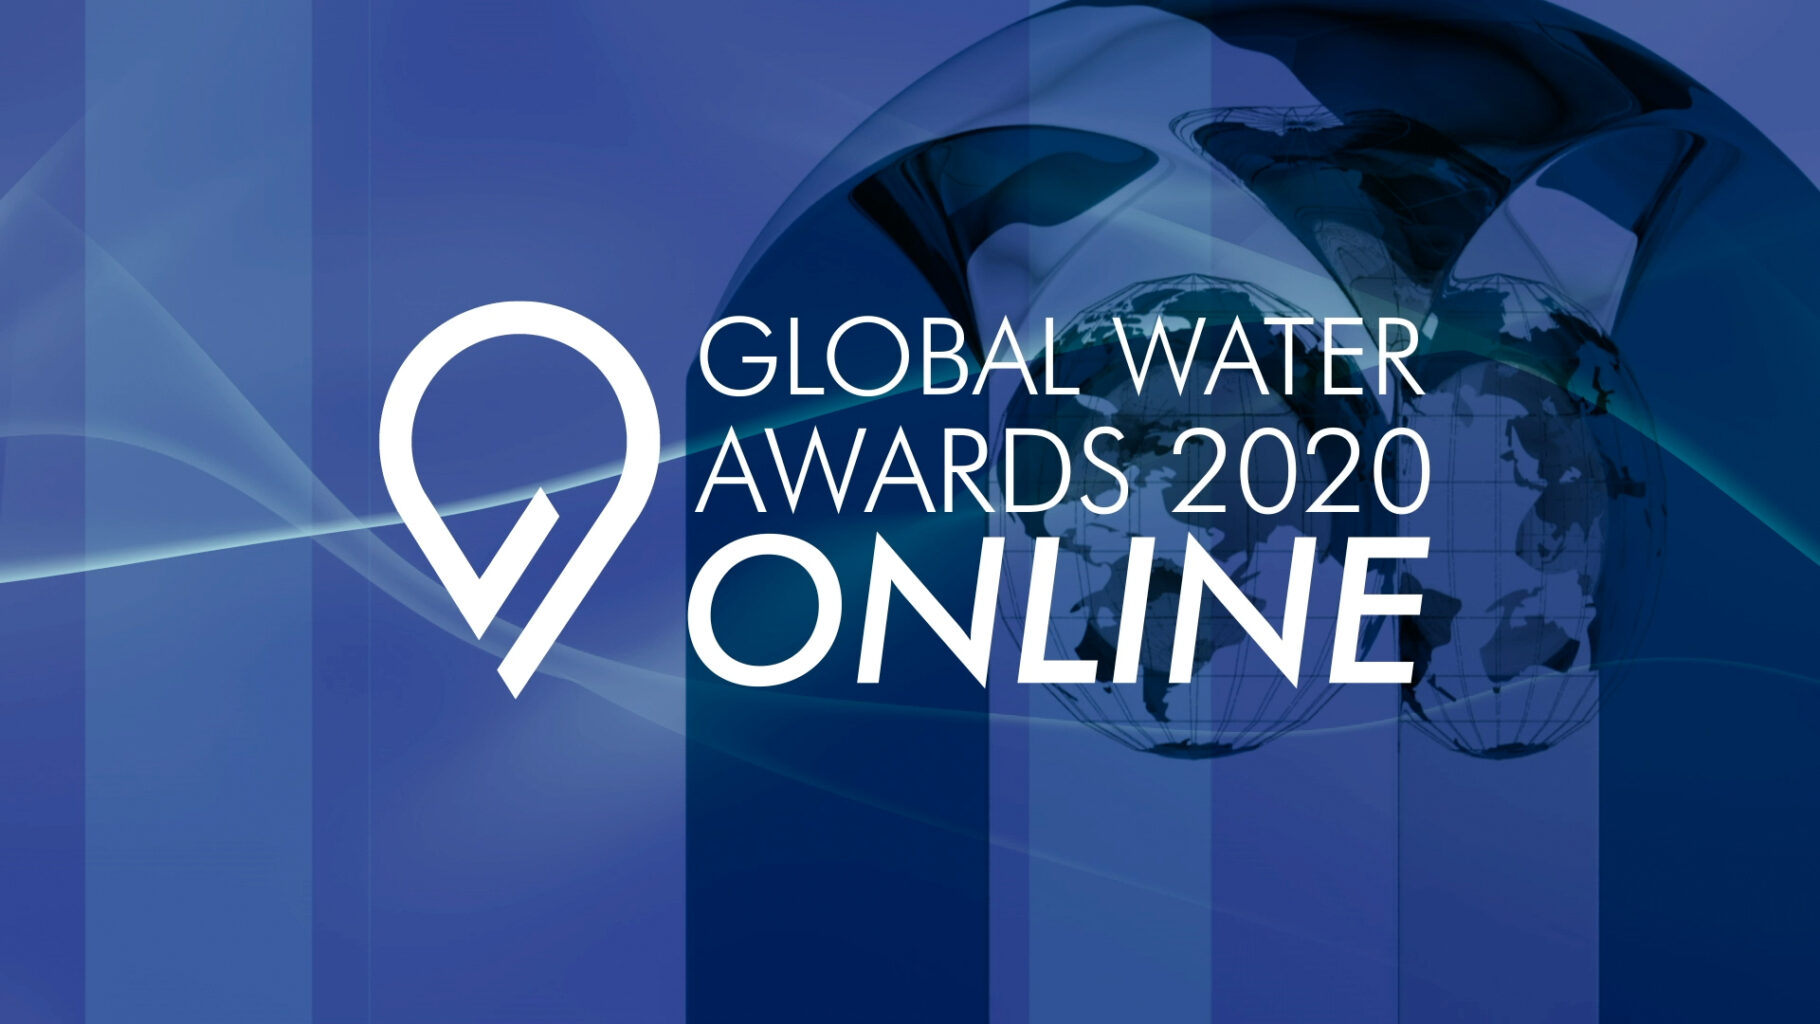 Global Water Awards Online 2020